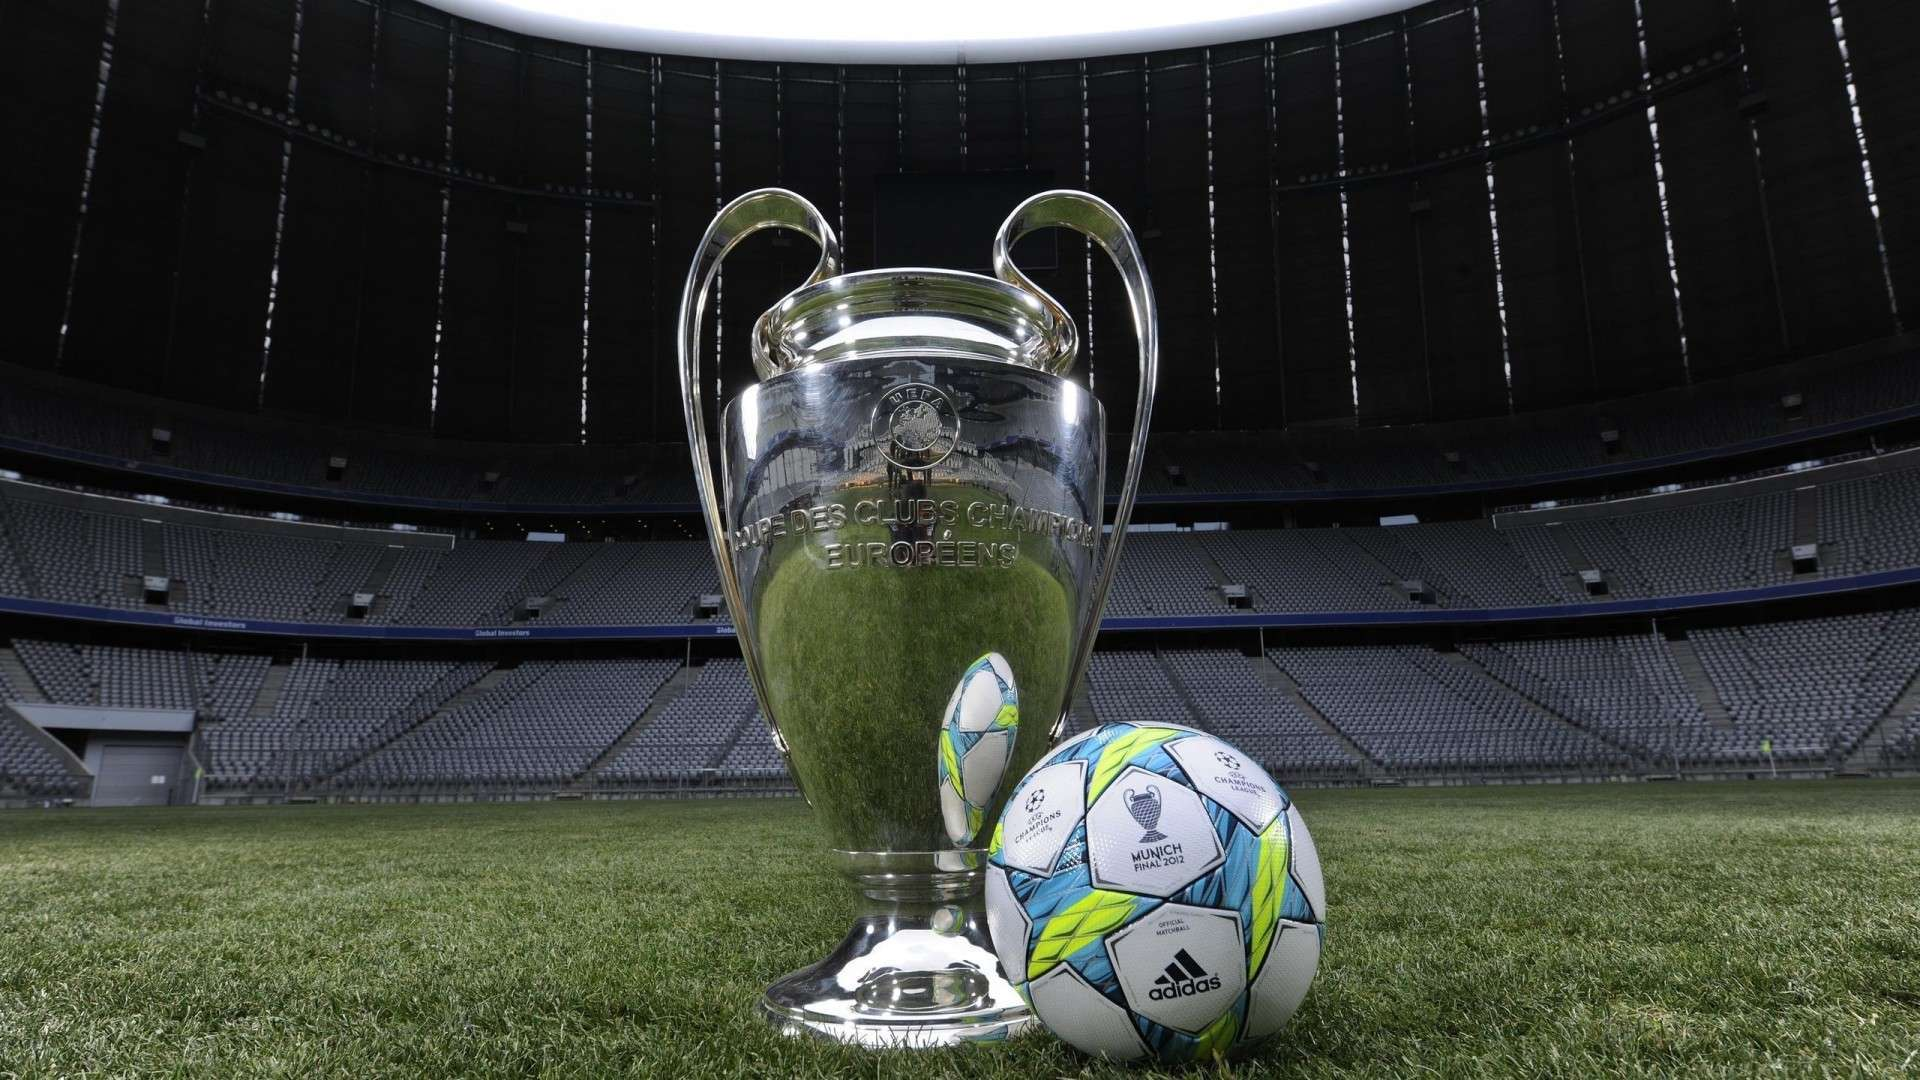 uefa champions league trophy 2014 wallpaper 1 playo uefa champions league trophy 2014